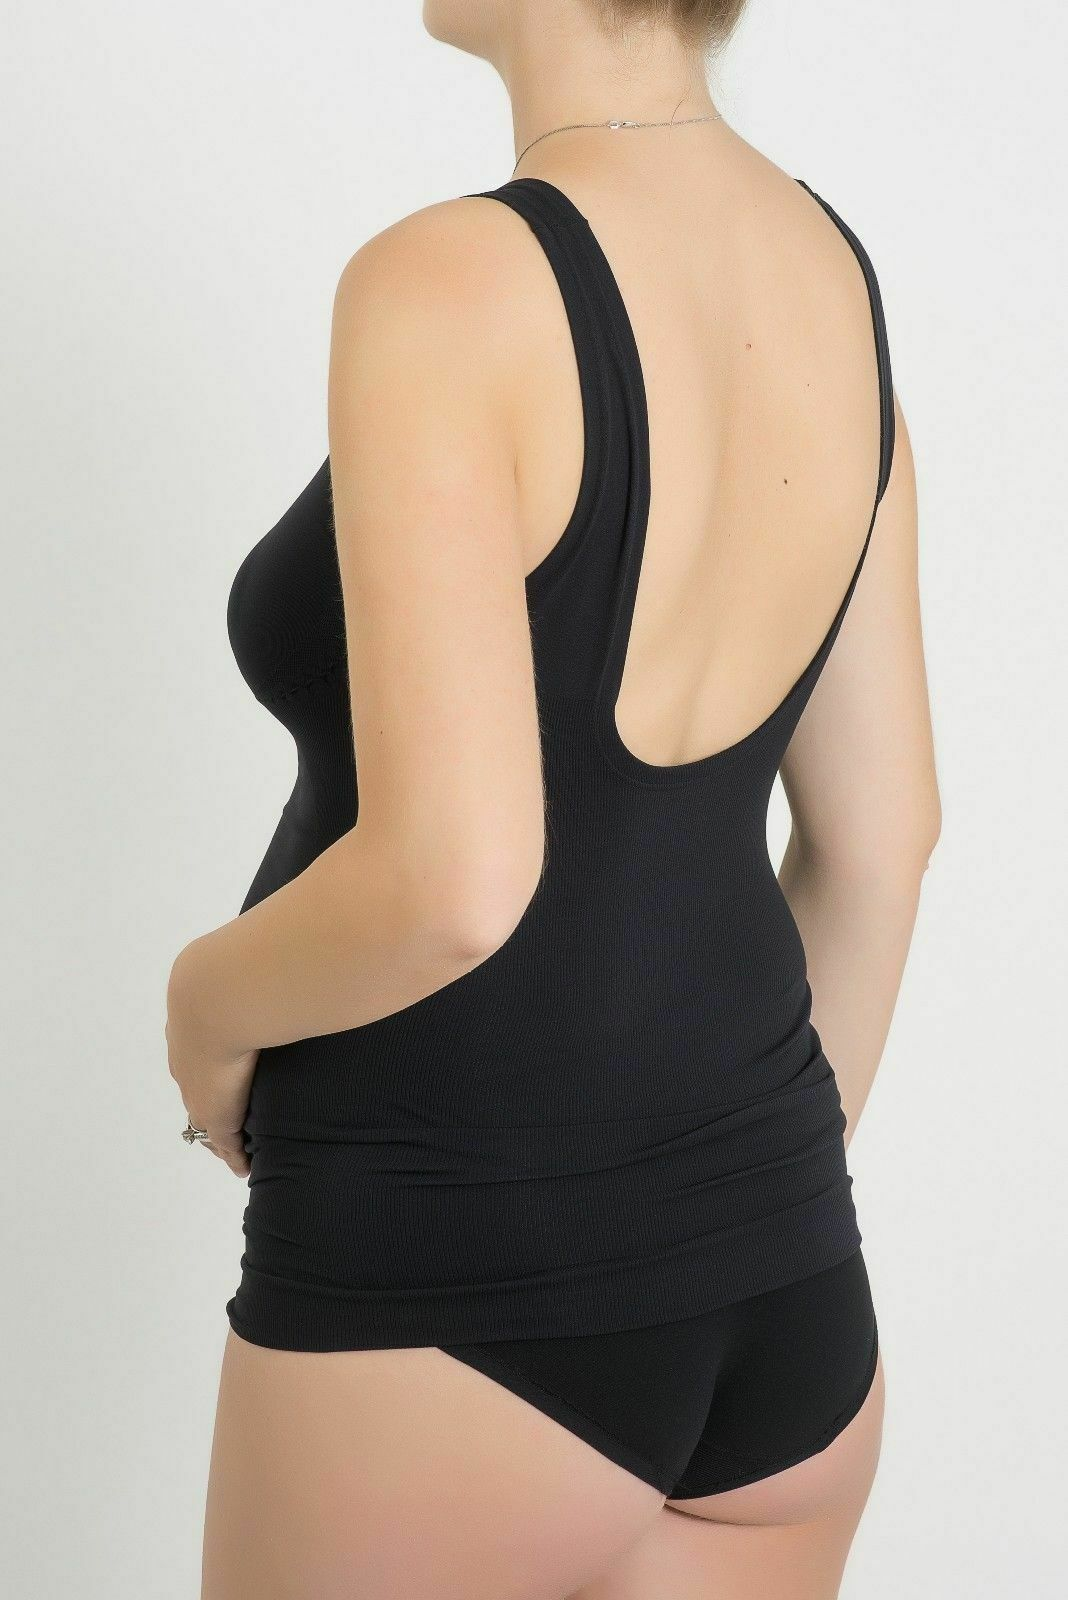 Bellissima-Women-039-s-Maternity-Tank-Top-Light-Breast-Belly-Support-Pregnancy-Cami thumbnail 25